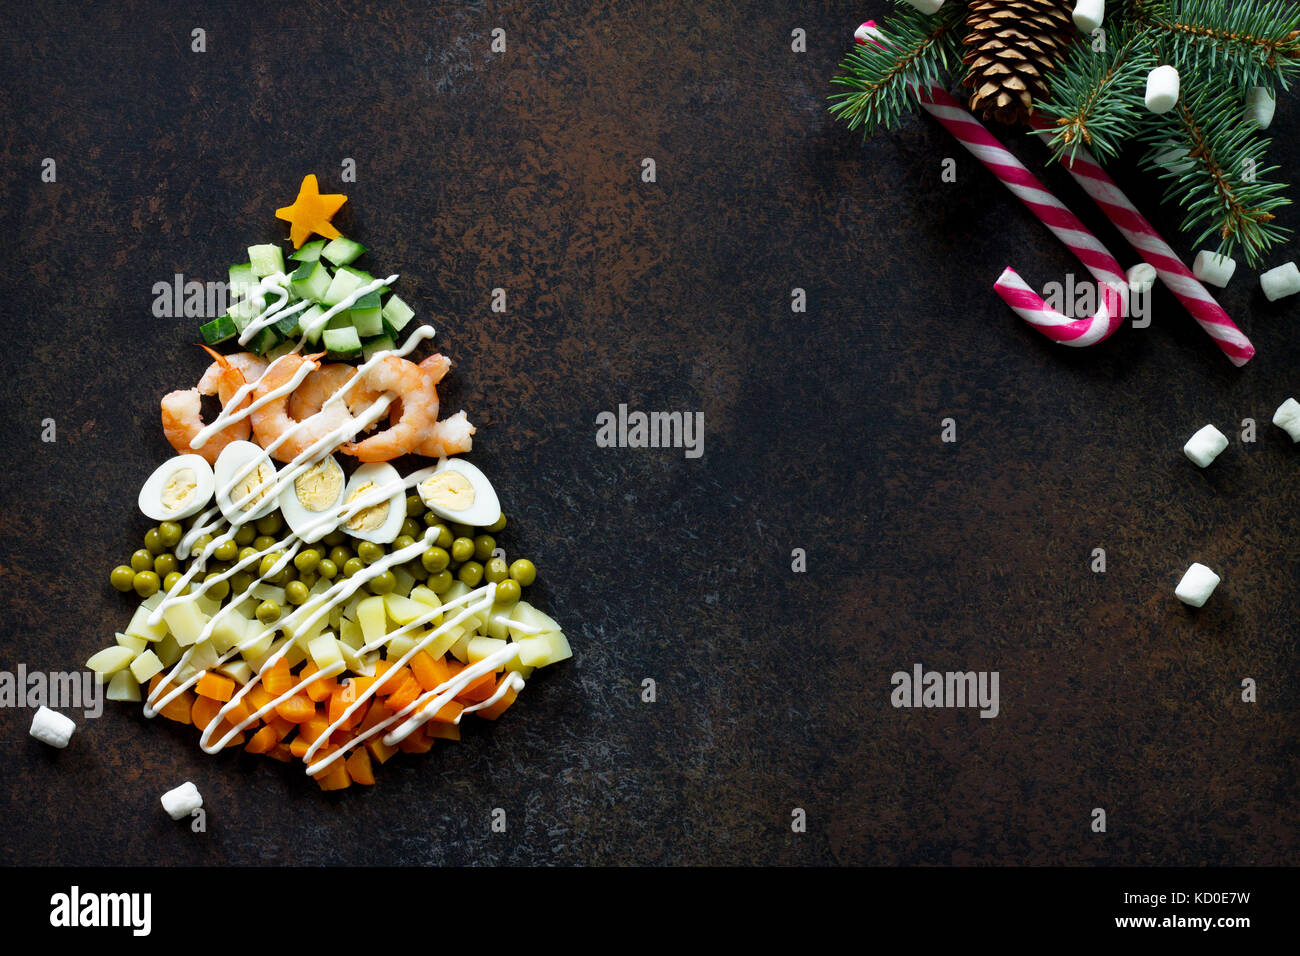 Christmas tree from a salad olivier on a brown rusty stone or metal background. Top view with a copy. - Stock Image